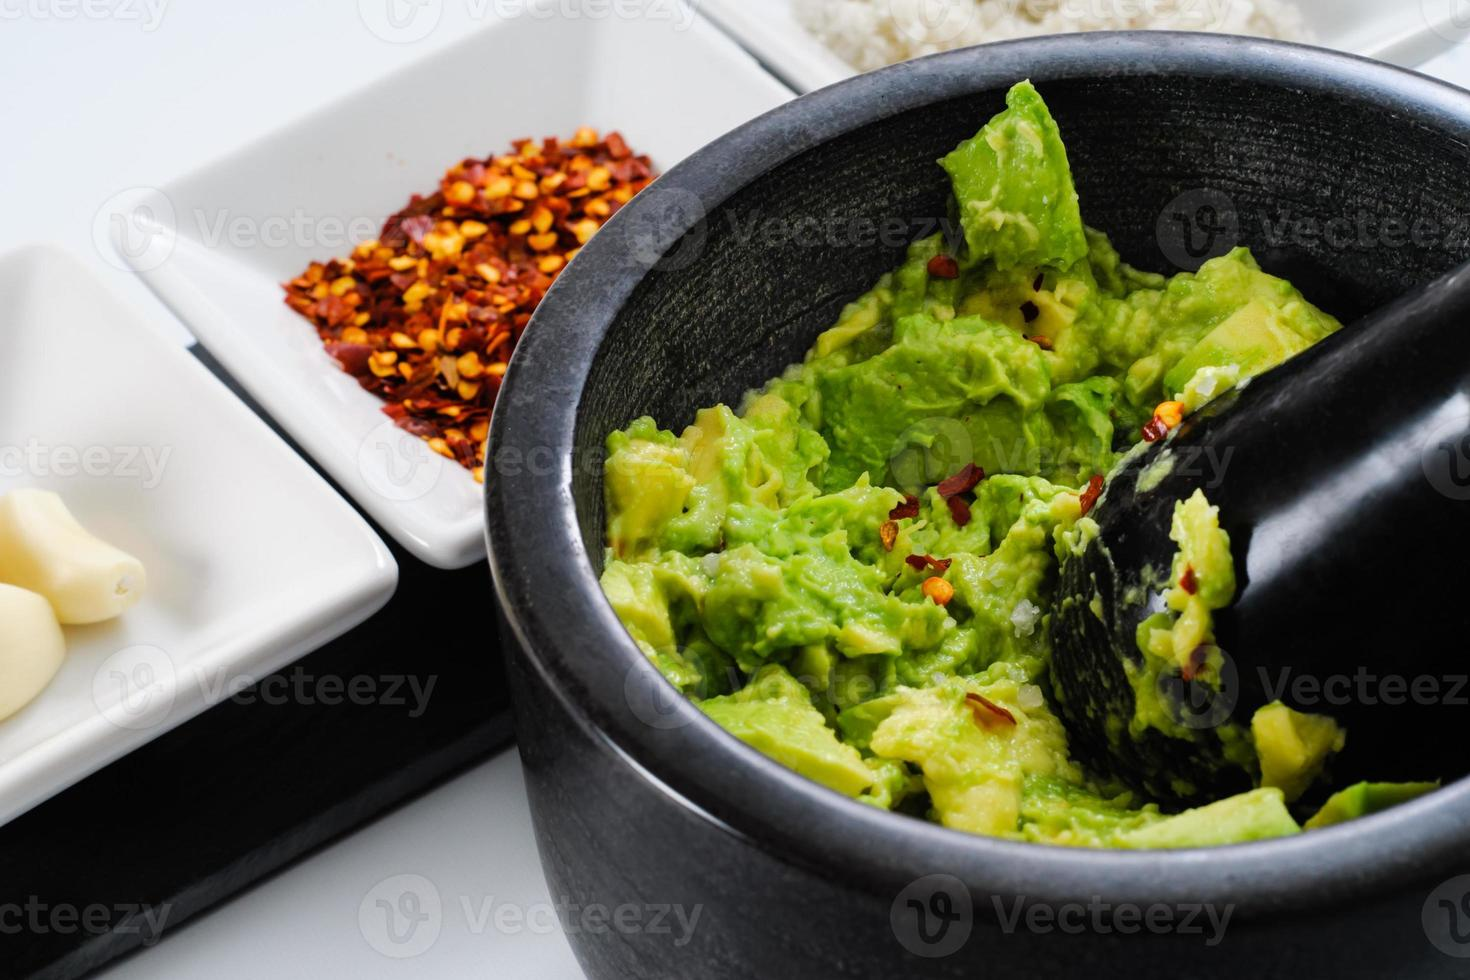 faire du guacamole photo